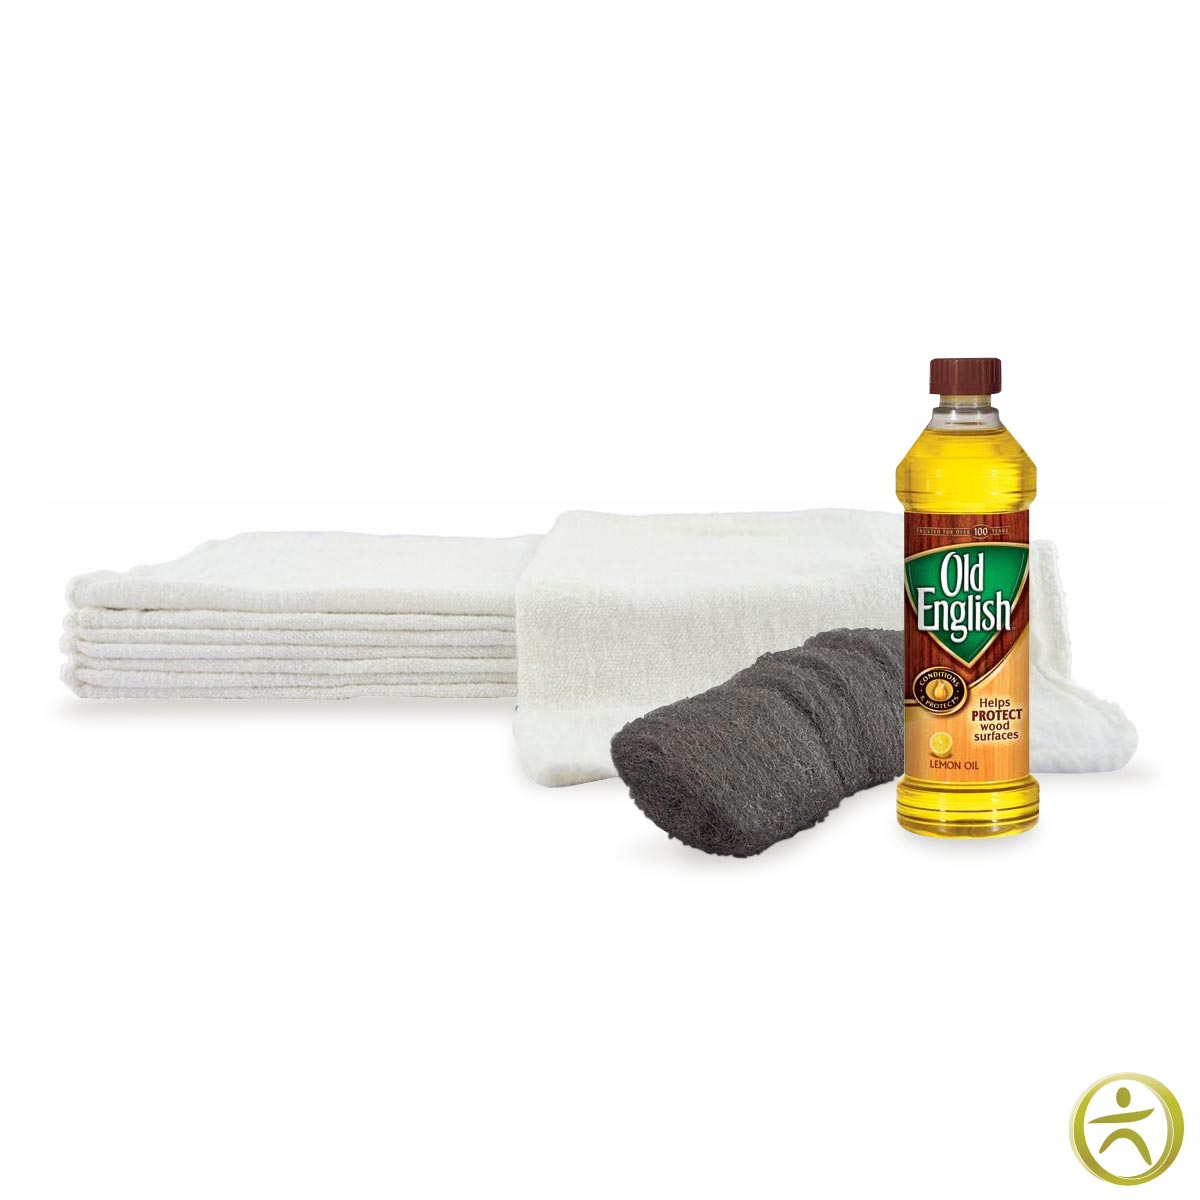 UPLIFT Solid Wood Care Kit